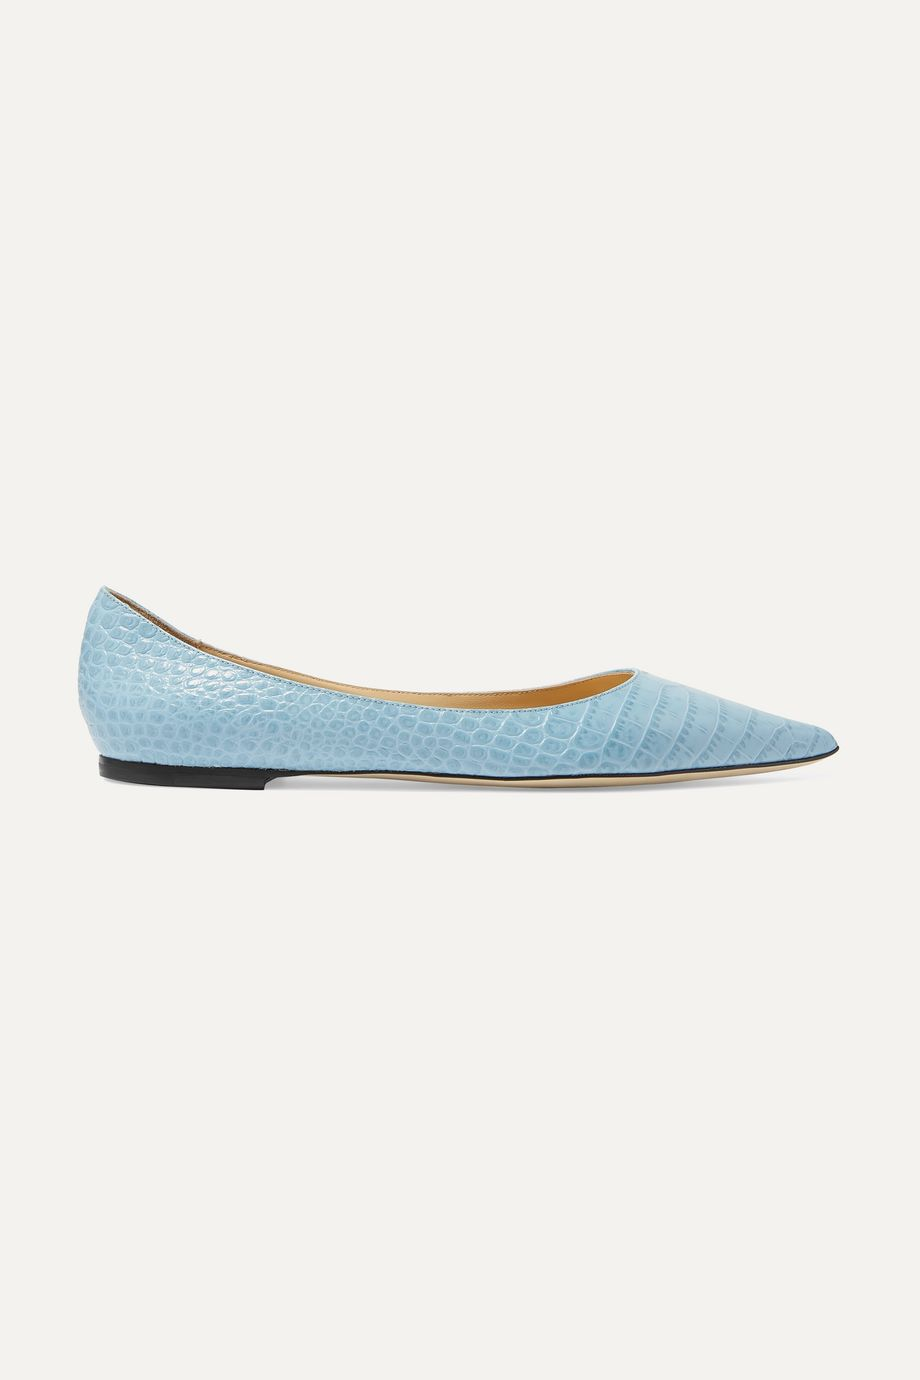 Jimmy Choo Love croc-effect leather point-toe flats